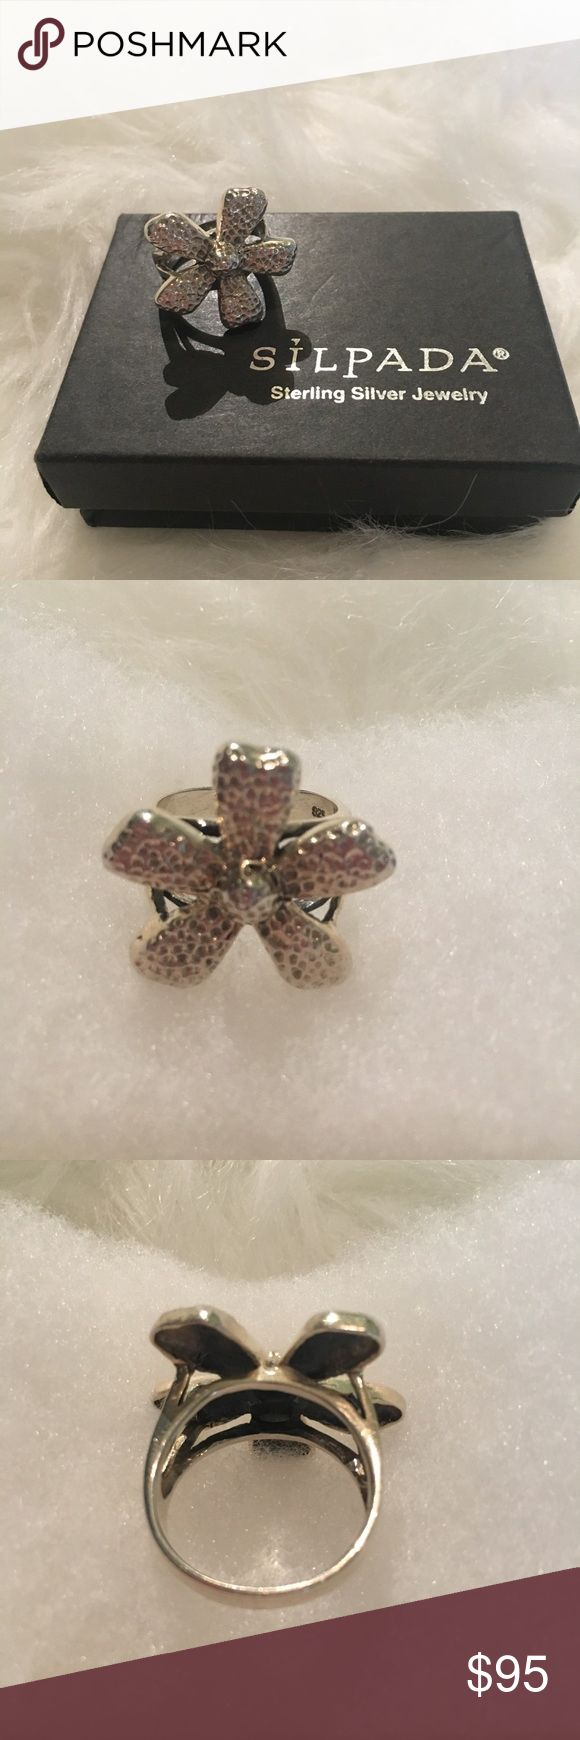 """Silpada Big Textured Daisy Flower Ring Silpada Big Textured Daisy Flower Ring.  Sterling Silver.  Size 9.  Flower measures about 1"""" in diameter.  EUC.  Retired style. Silpada Jewelry Rings"""